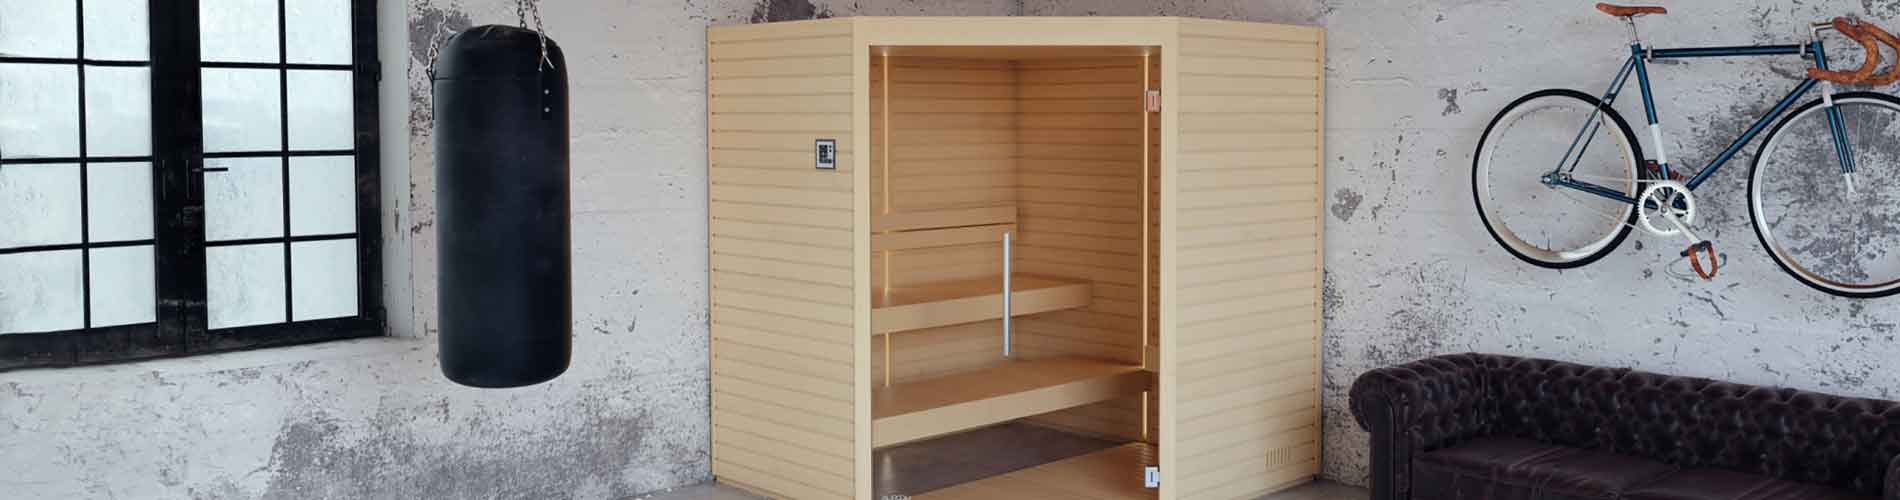 Sauna Interieur Bois Traditionnel Varia Auroom Annecy